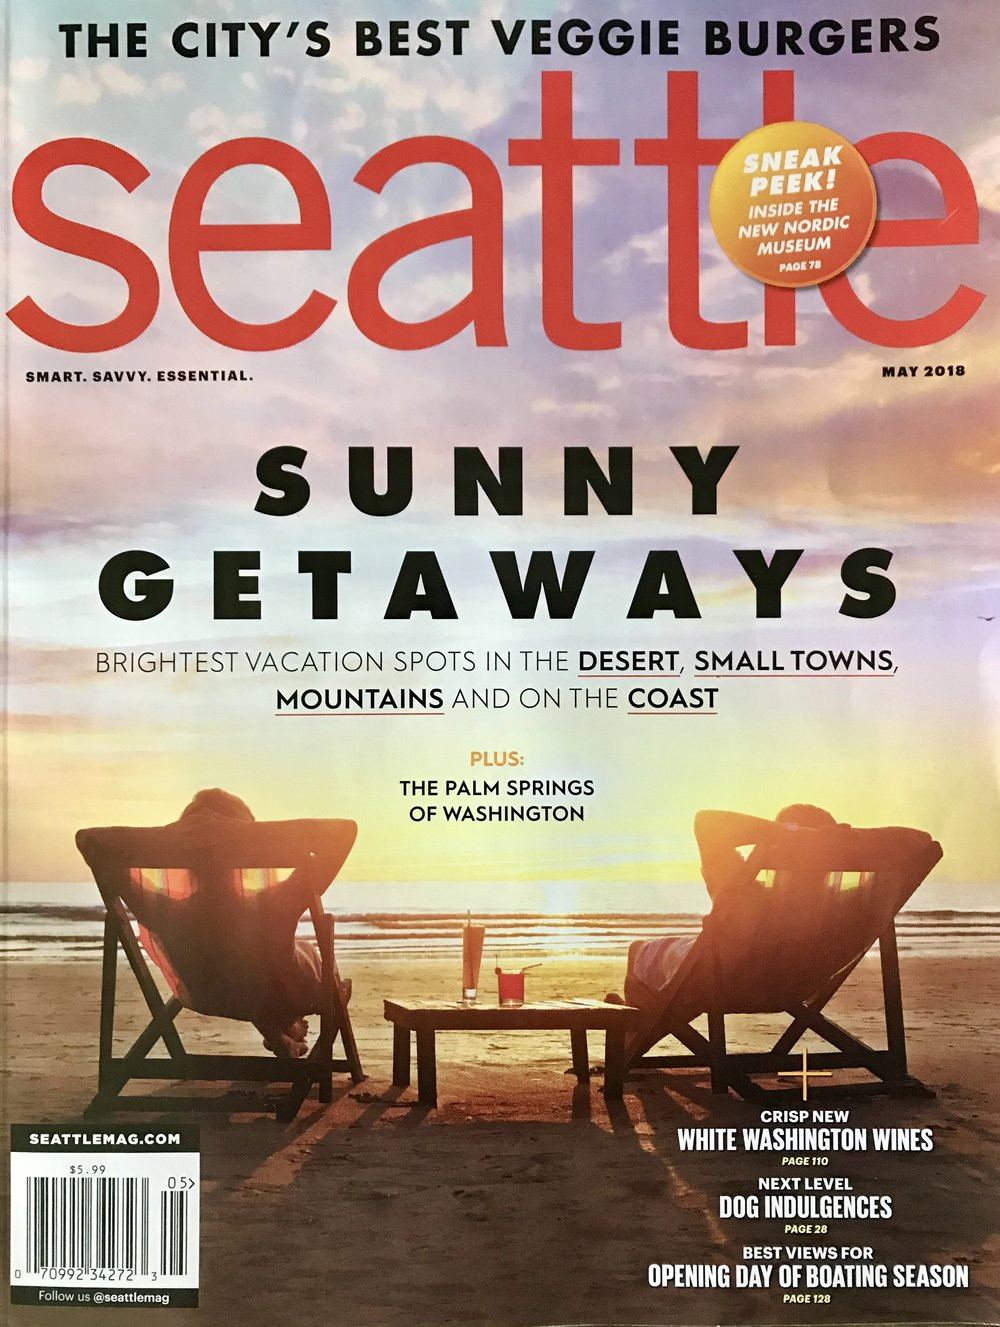 SEATTLE MAGAZINE - May 2018